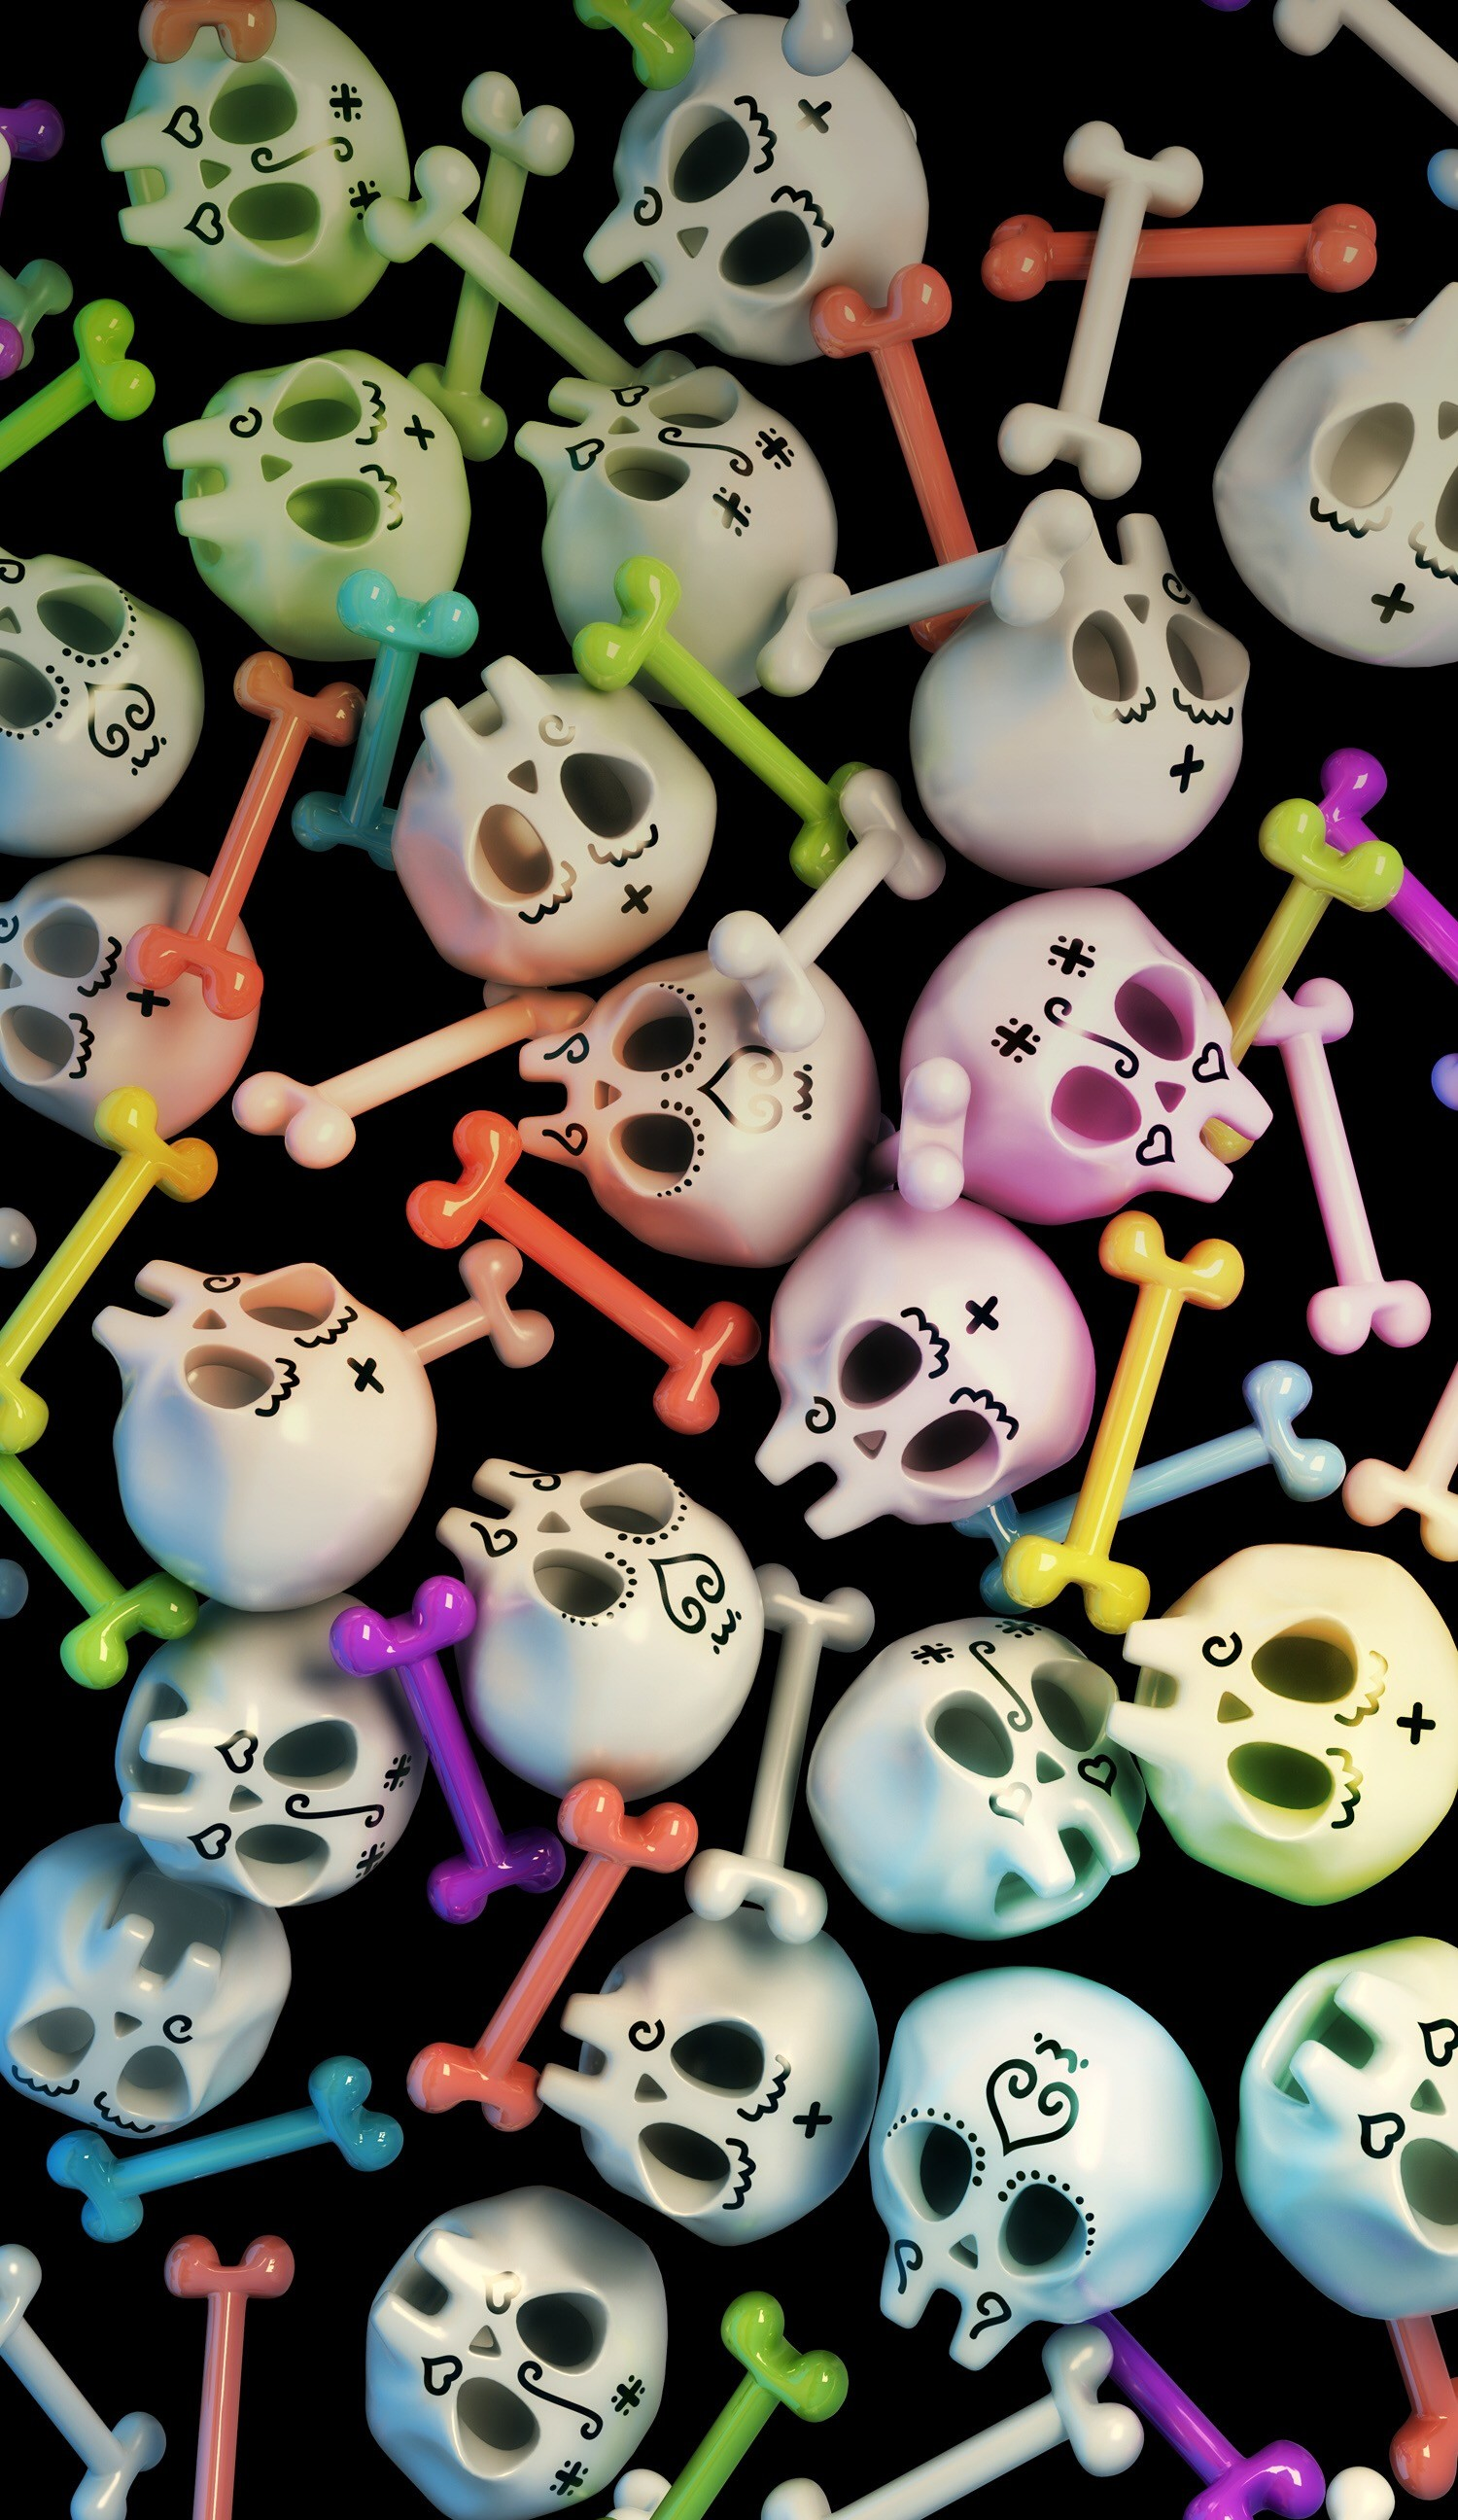 Sugar Skull Wallpaper For Iphone 62 Images